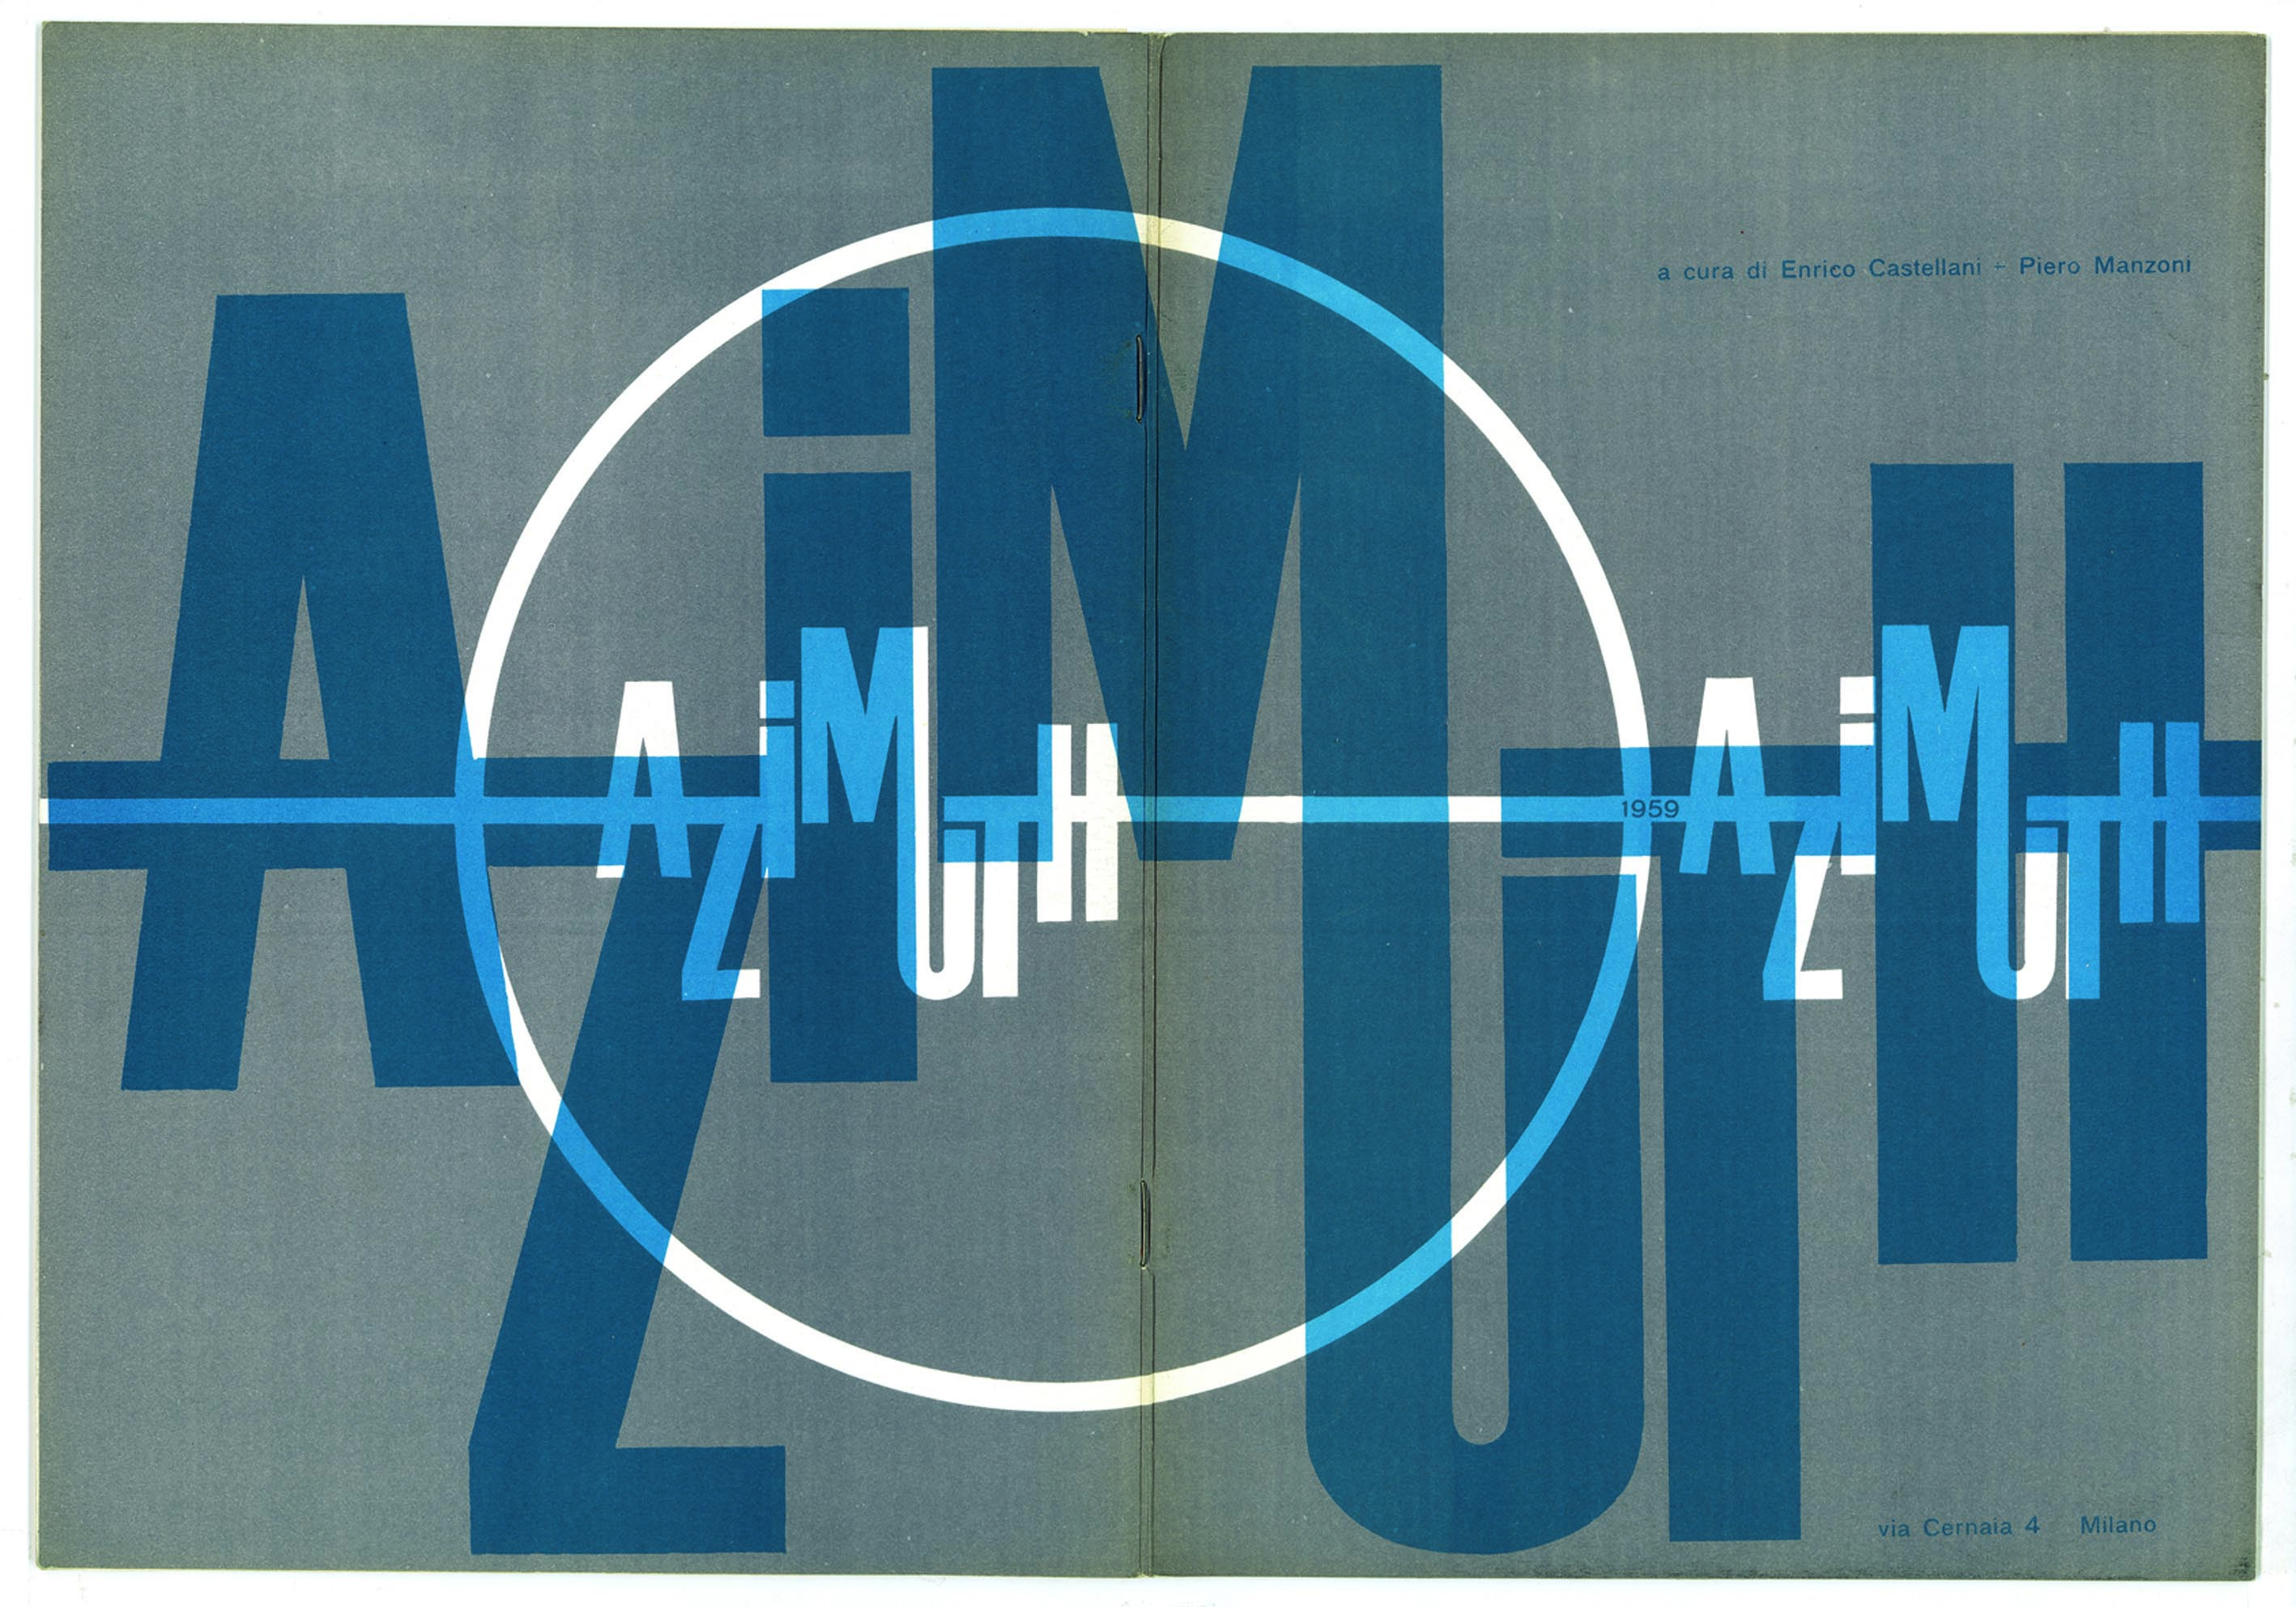 Cover of the first issue of the Azimuthr, September 1959 Courtesy Fondazione Piero Manzoni, Milan